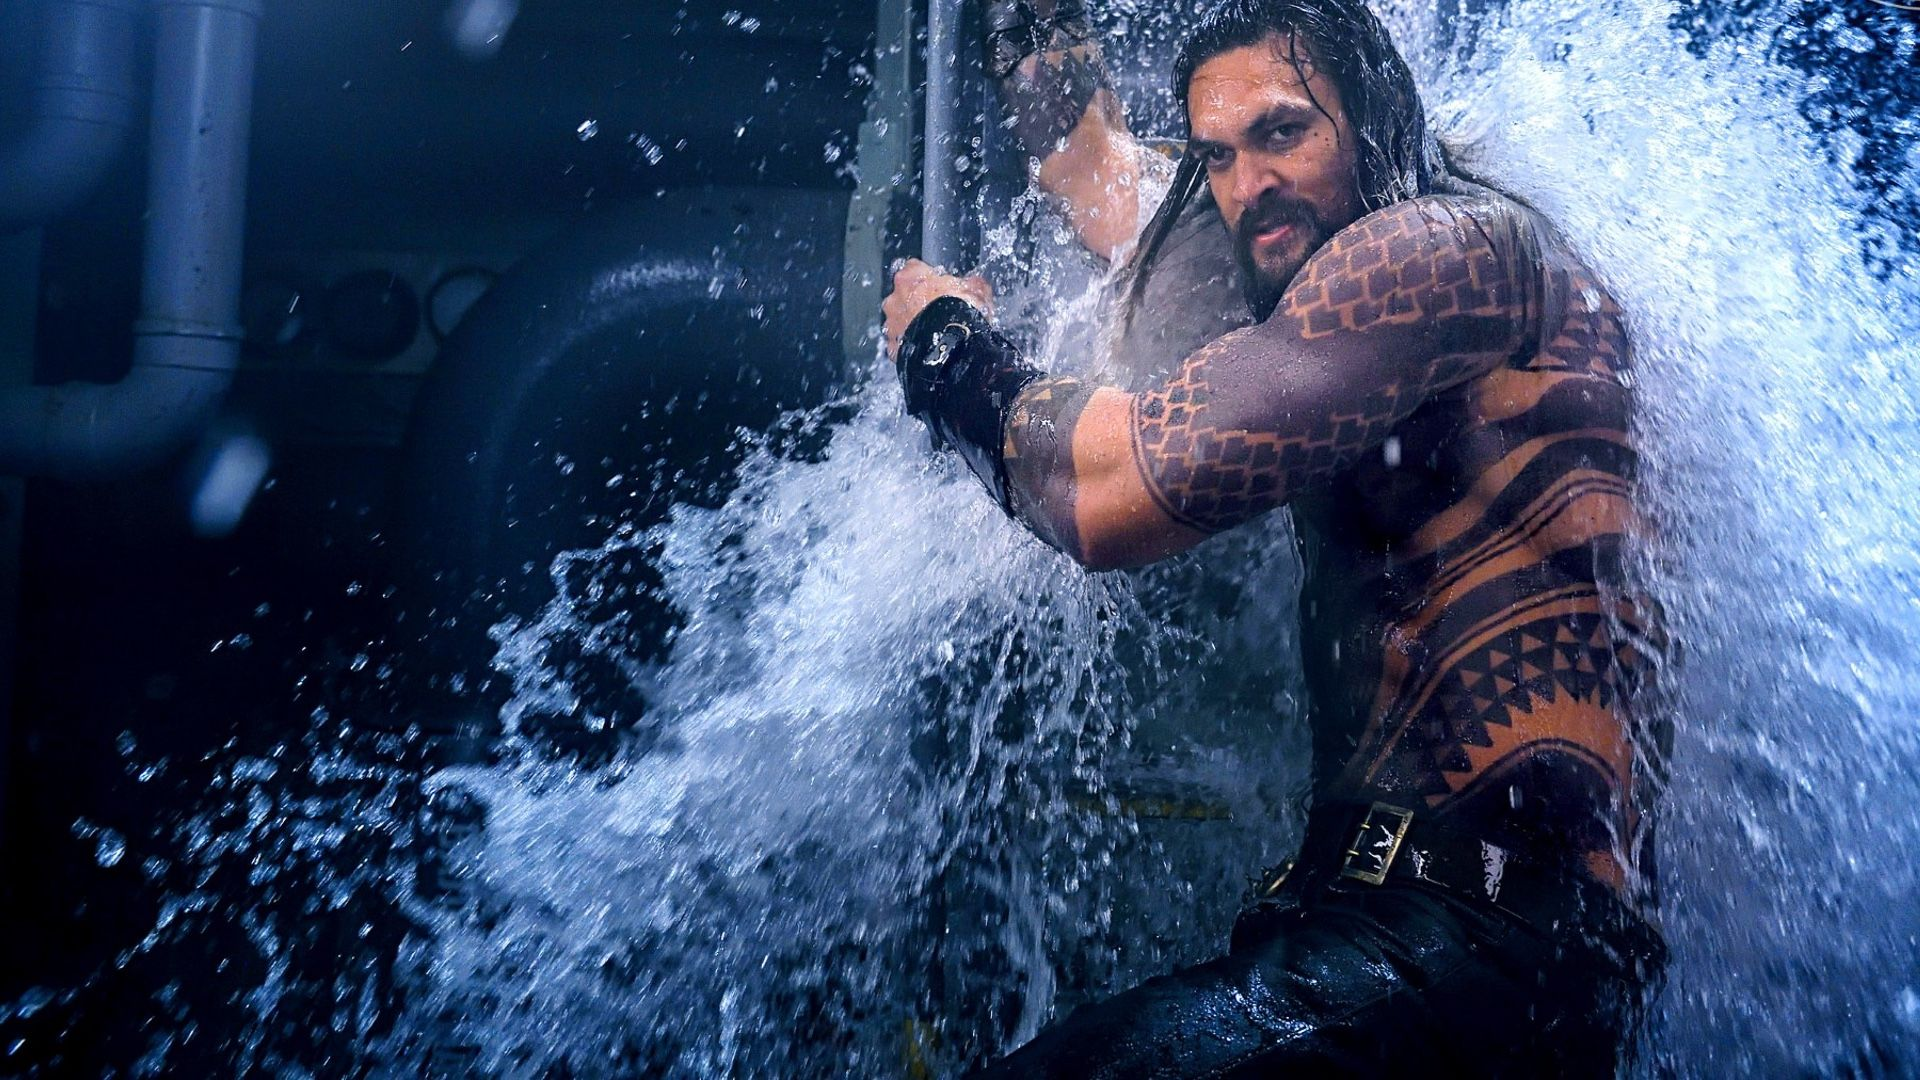 A still from the movie Aquaman